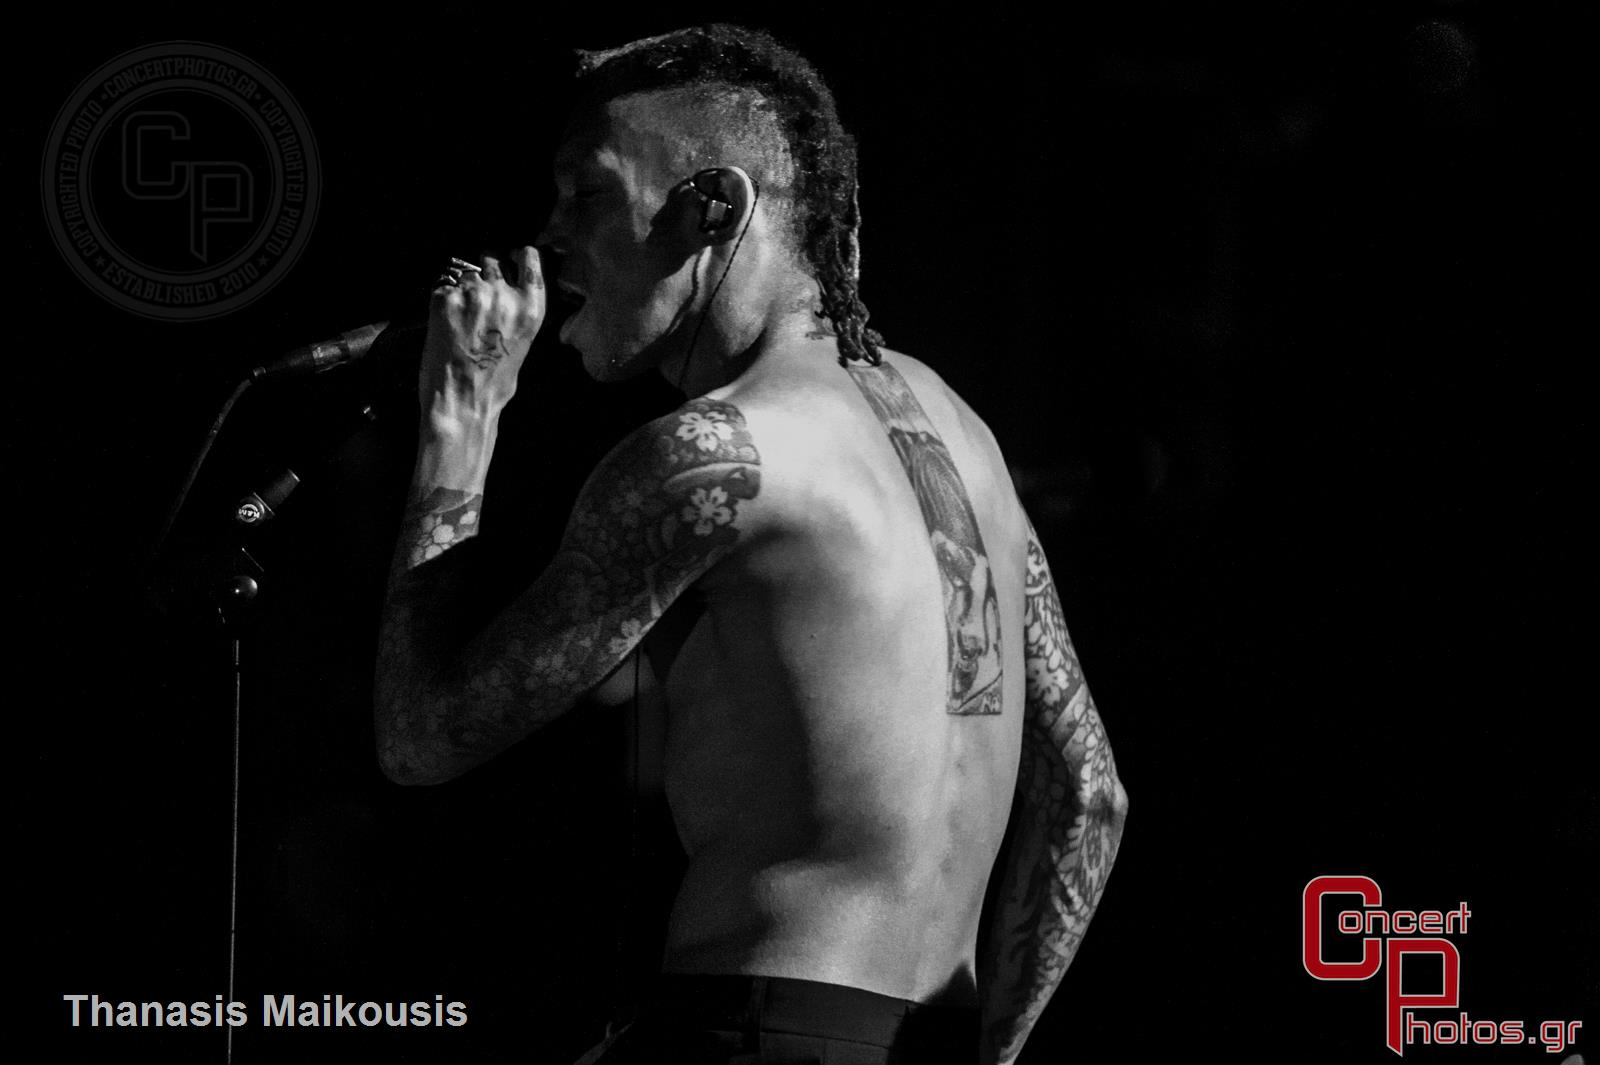 Tricky - Spectralfire-Tricky - Spectralfire photographer: Thanasis Maikousis - concertphotos_-3855